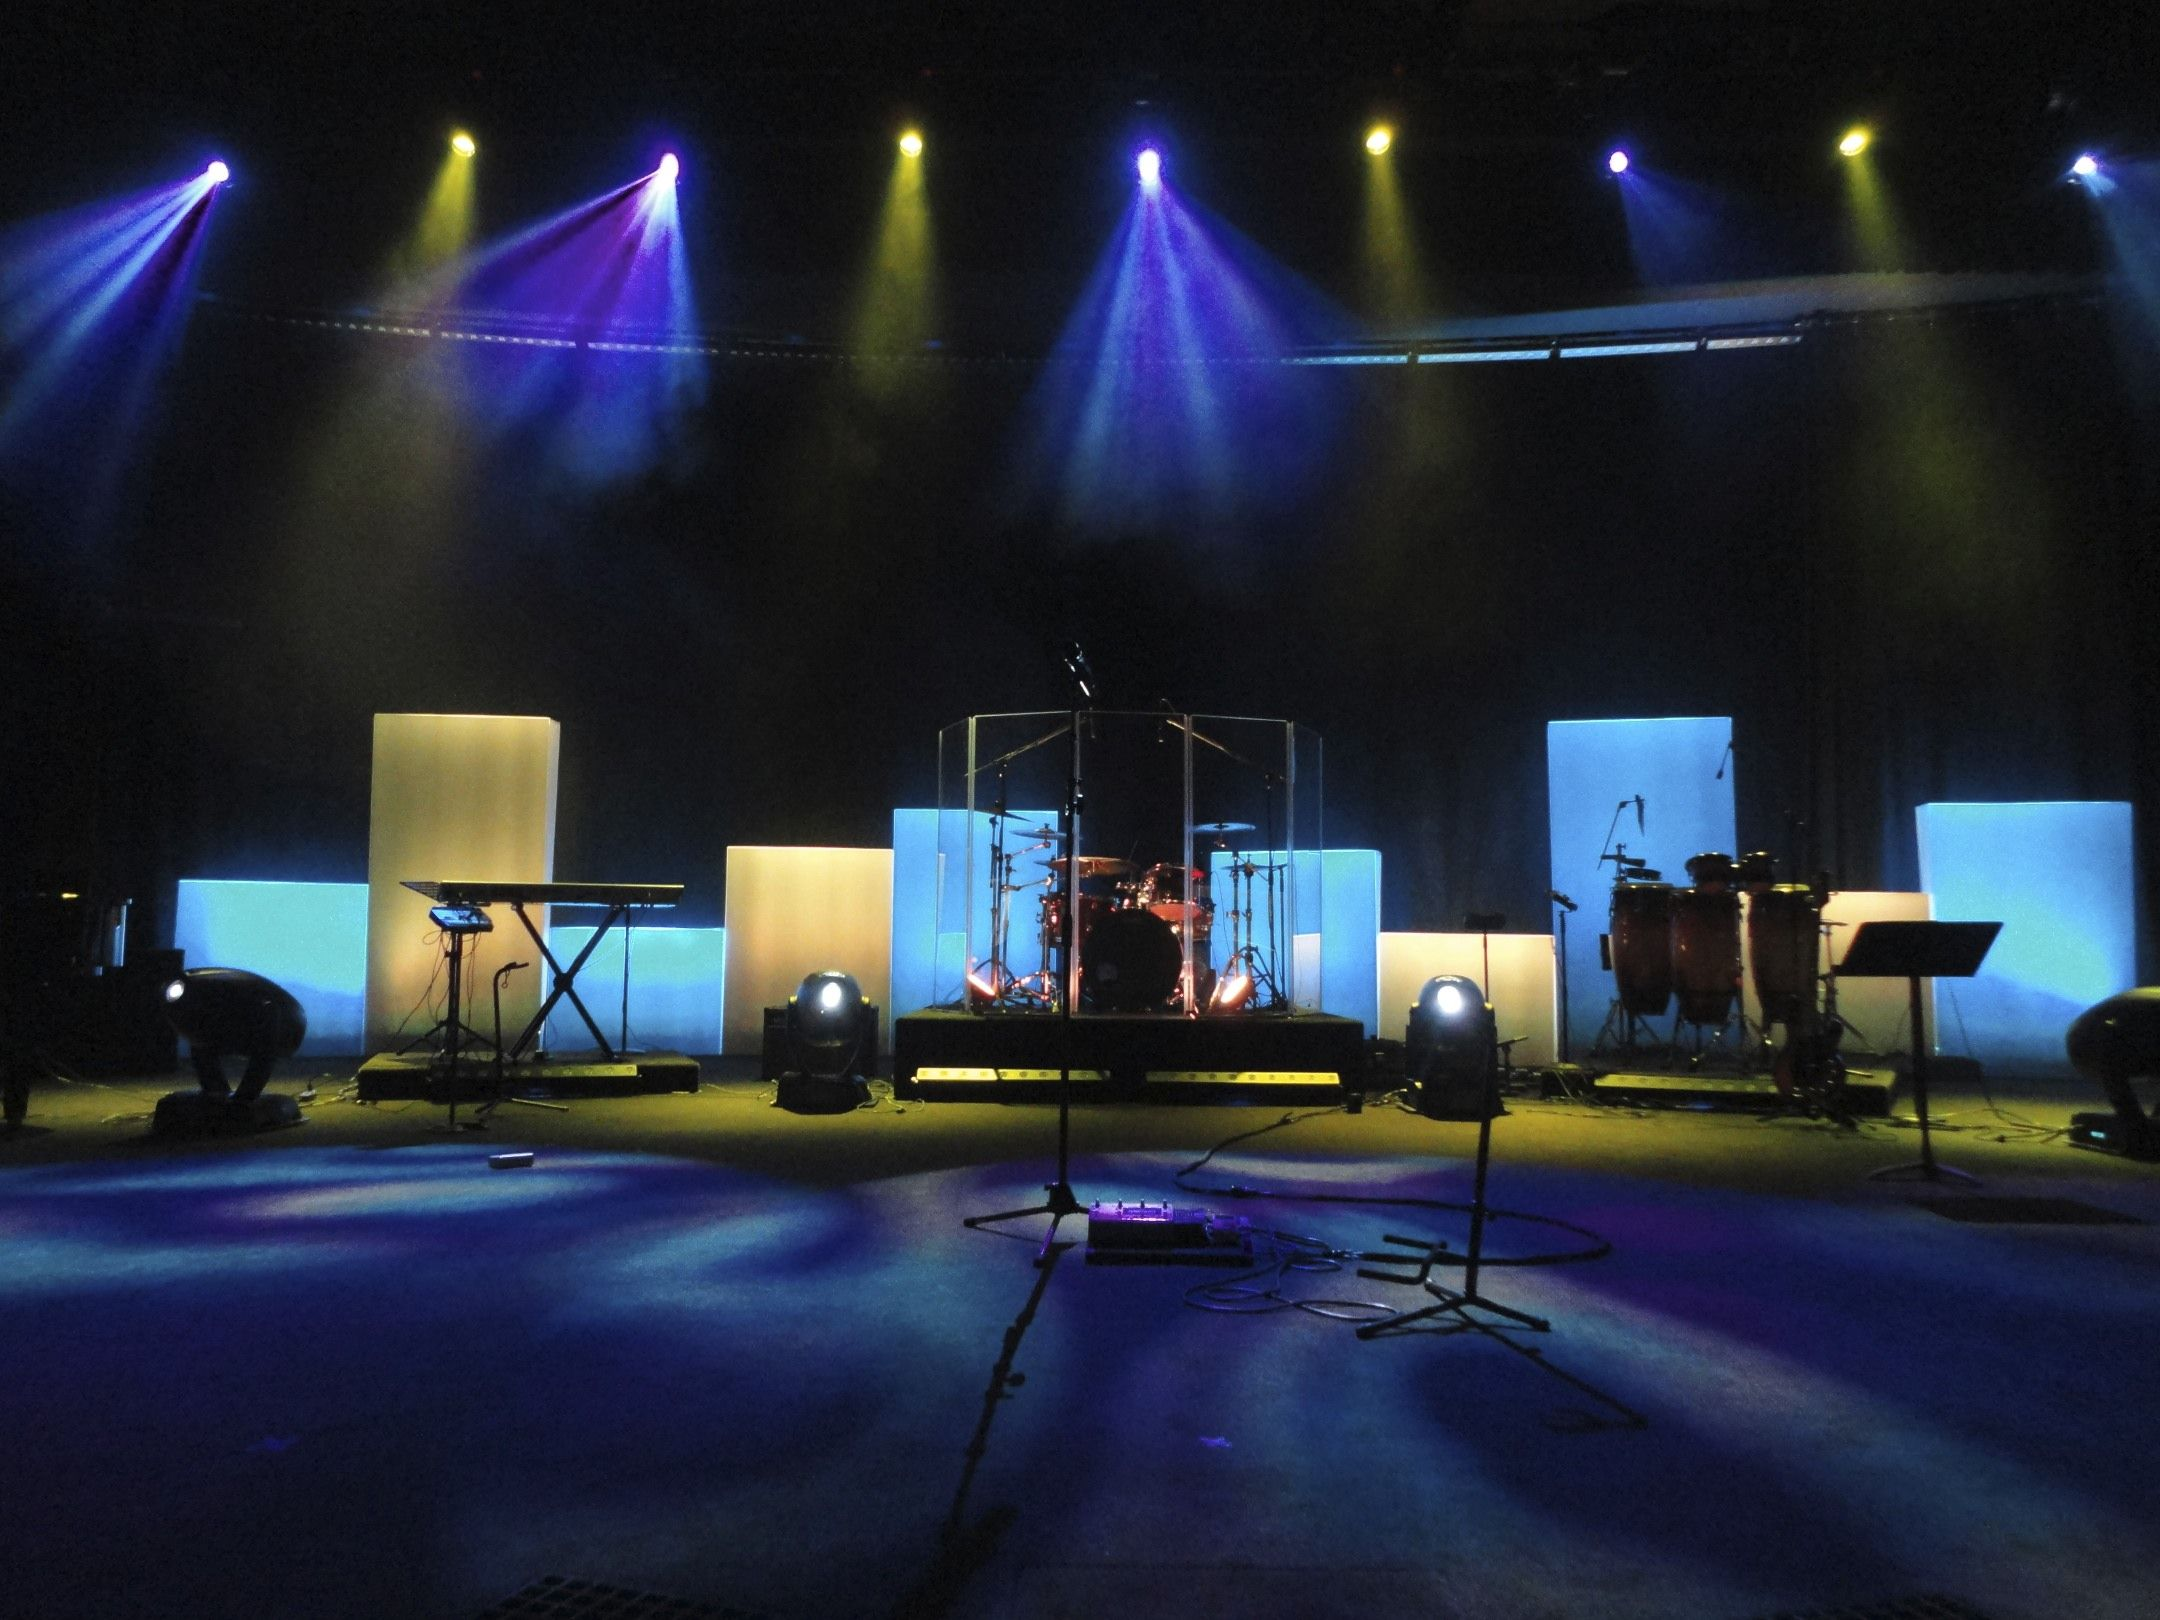 cheap church stage design ideas they also used 13 highend x spots 6